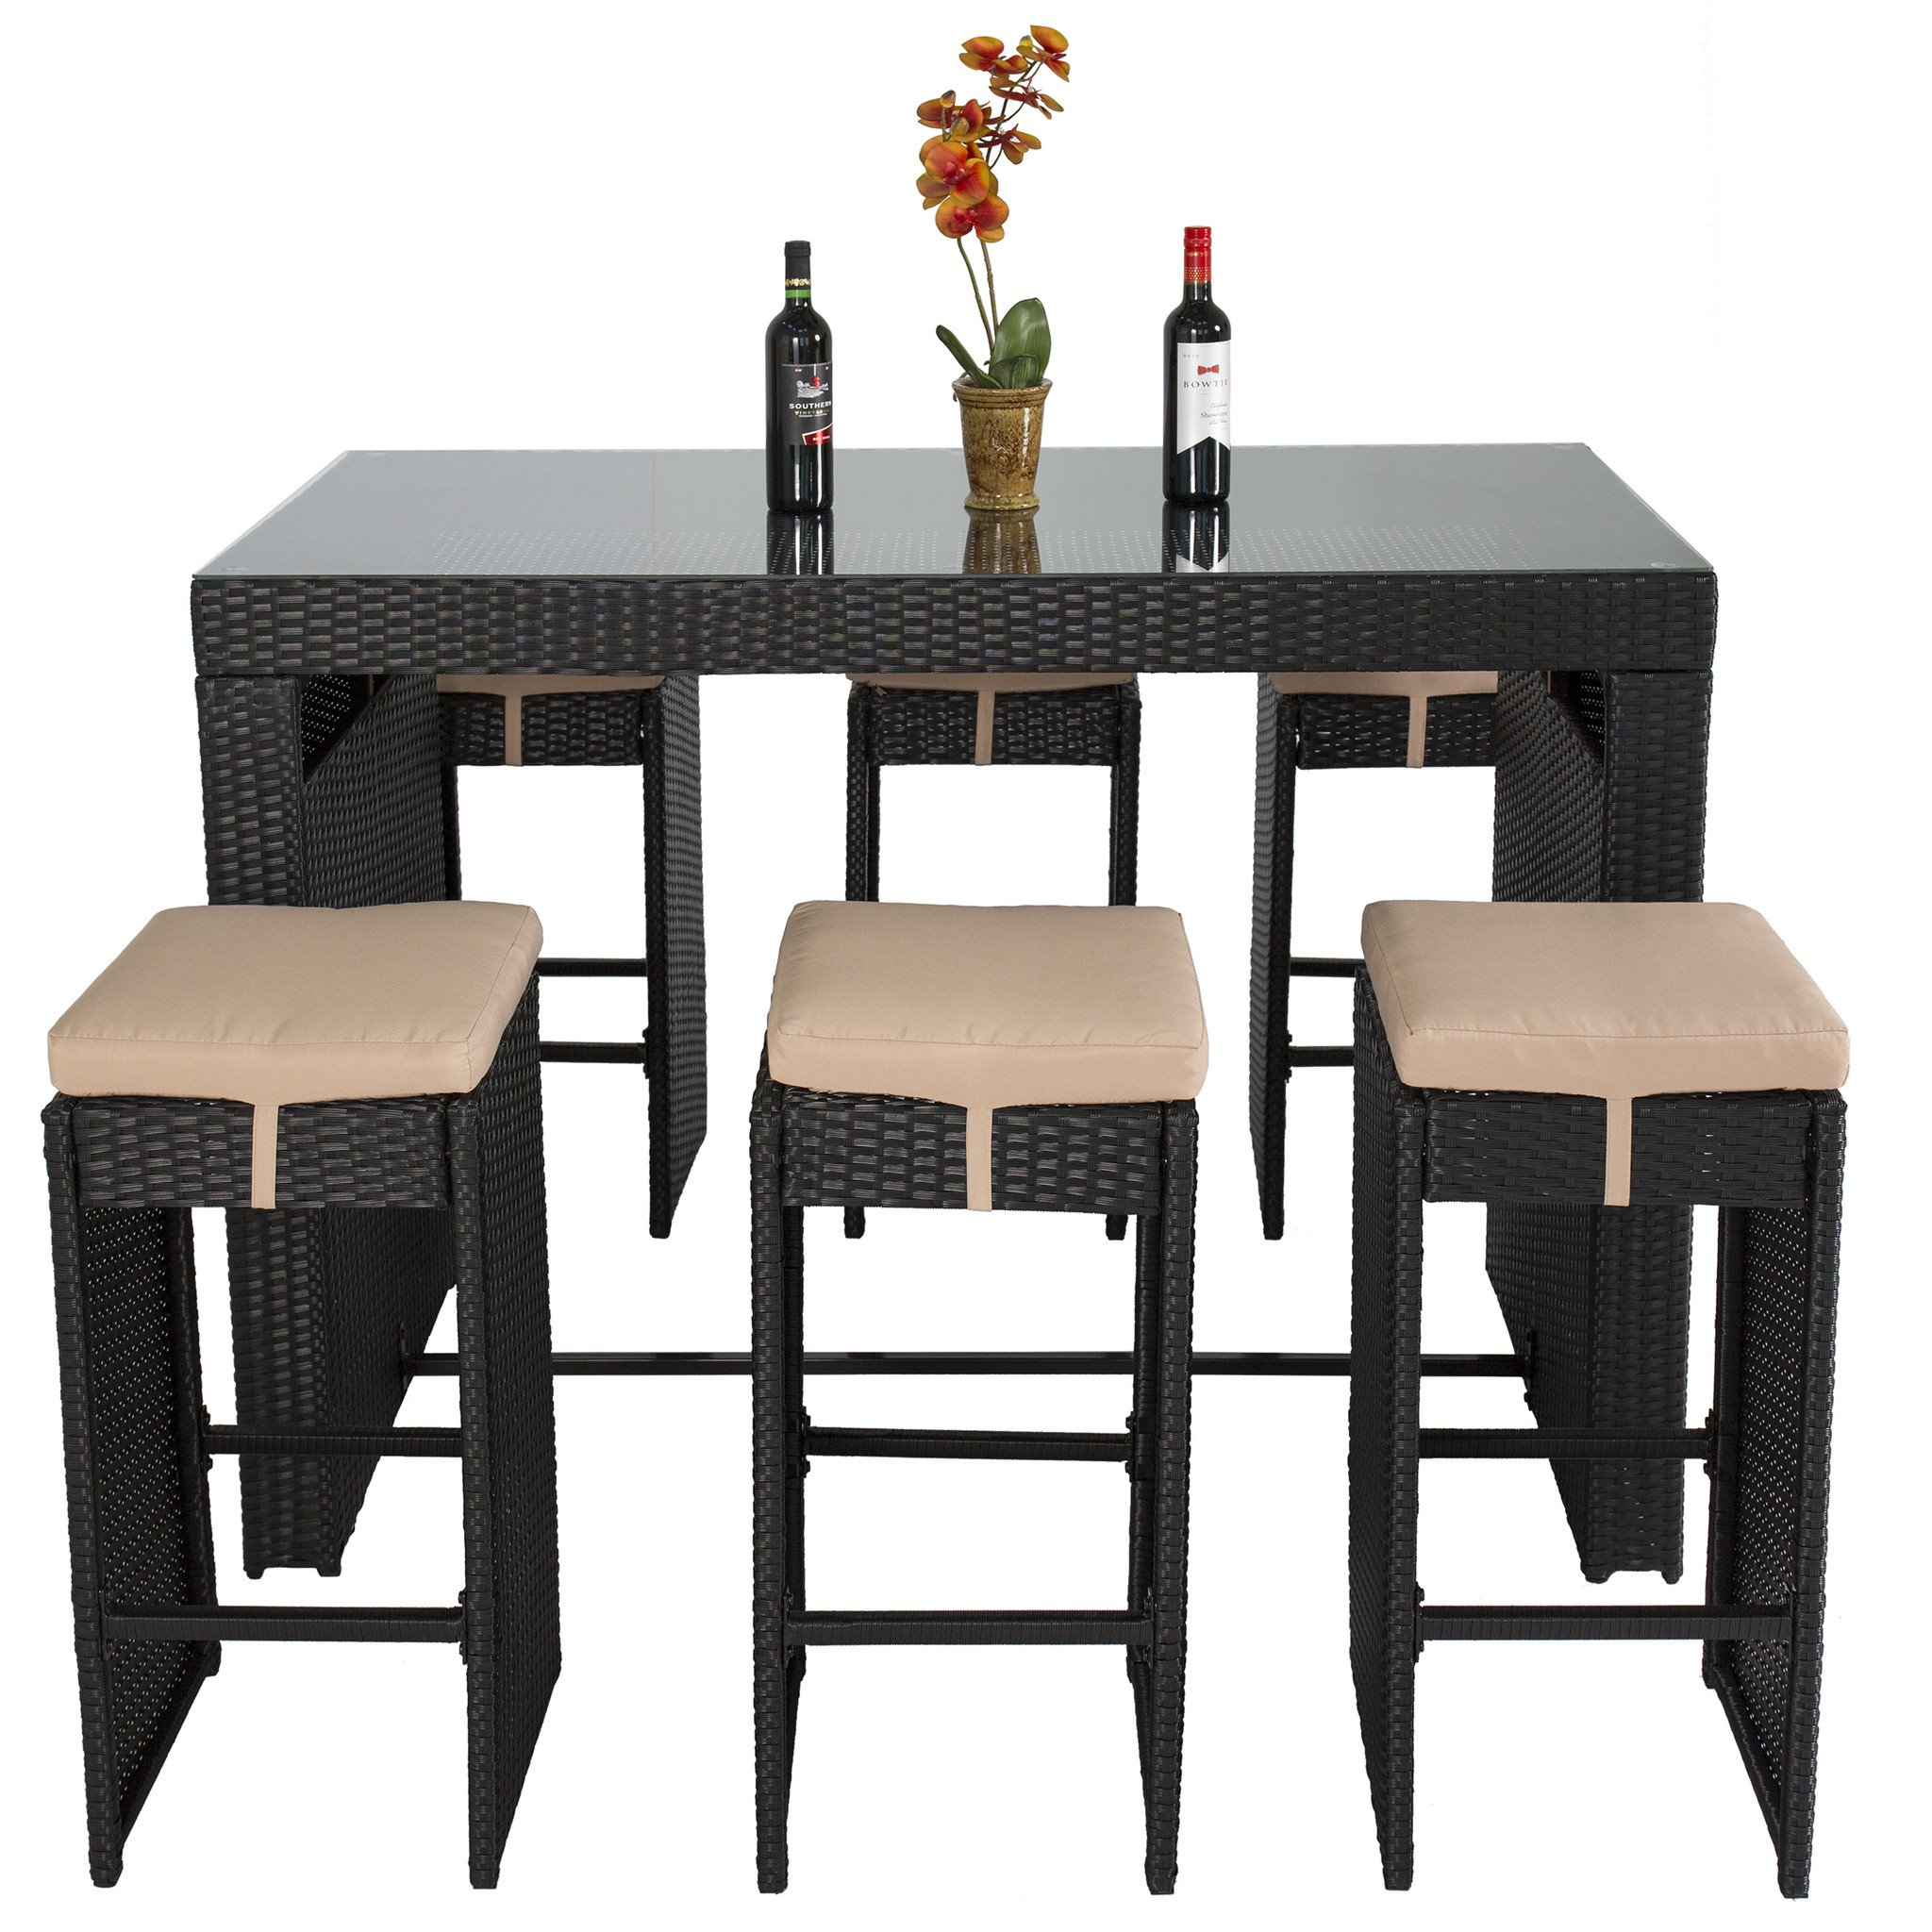 furniture cool wicker patio grand cypress rattan bar dining table set house stools underneath for storage black long length tempered glass top home decors accent full size target